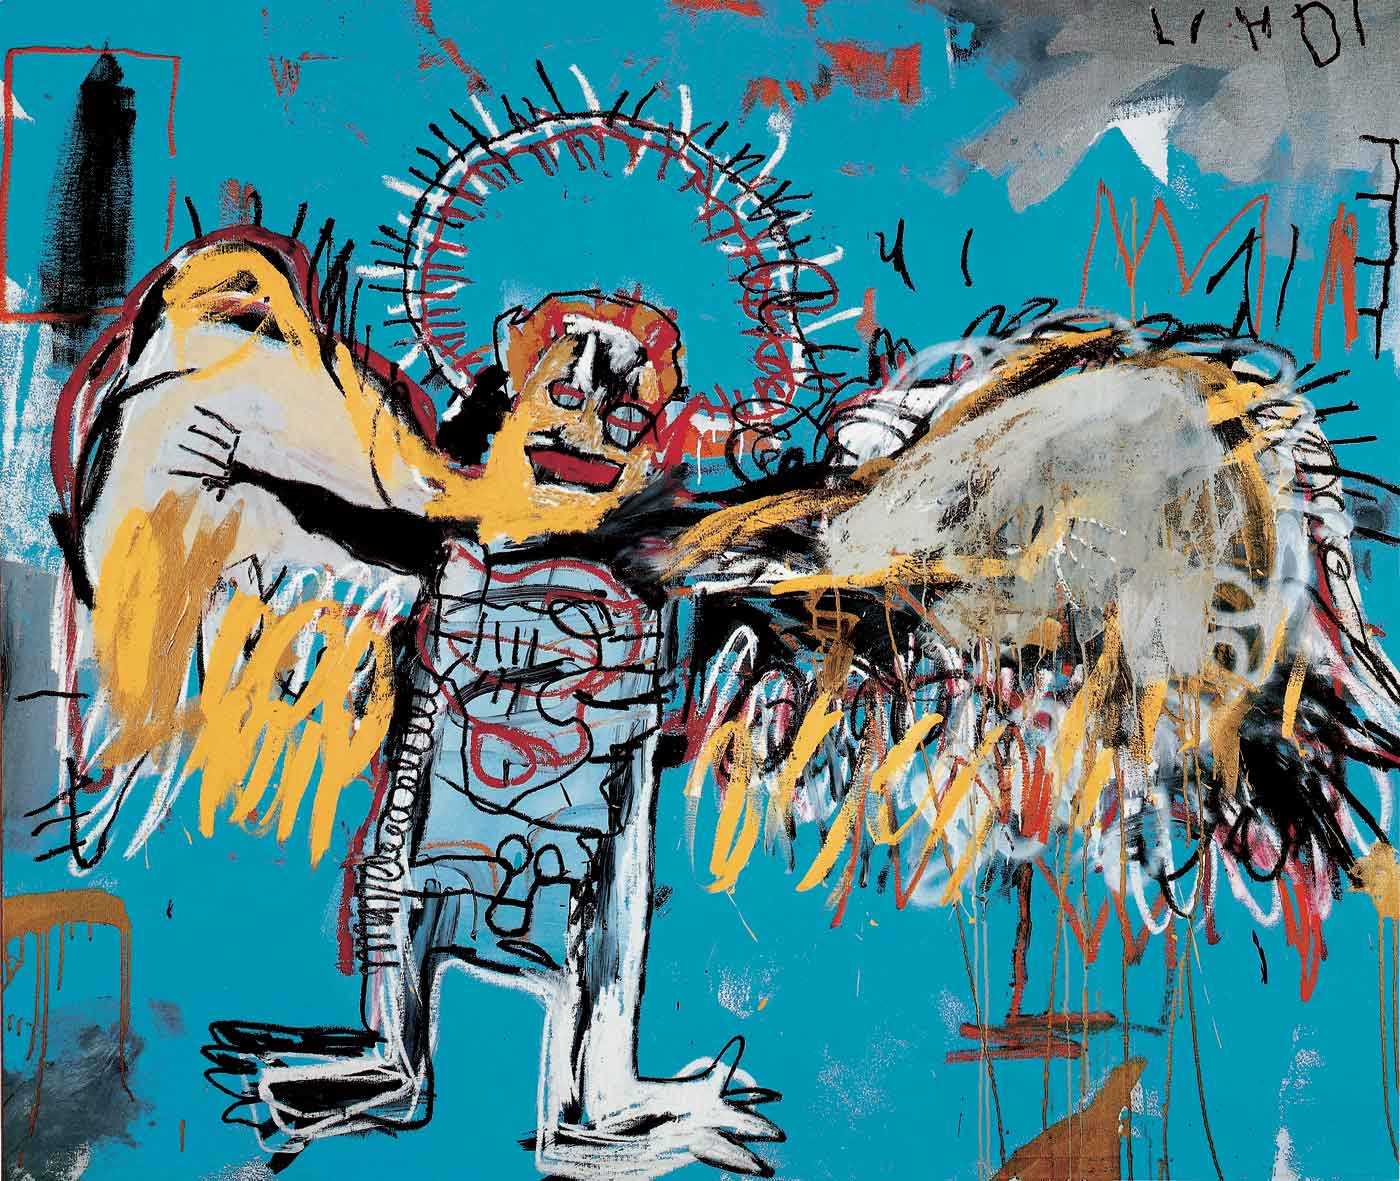 Jean Michel Basquiat, fallen angel, street art